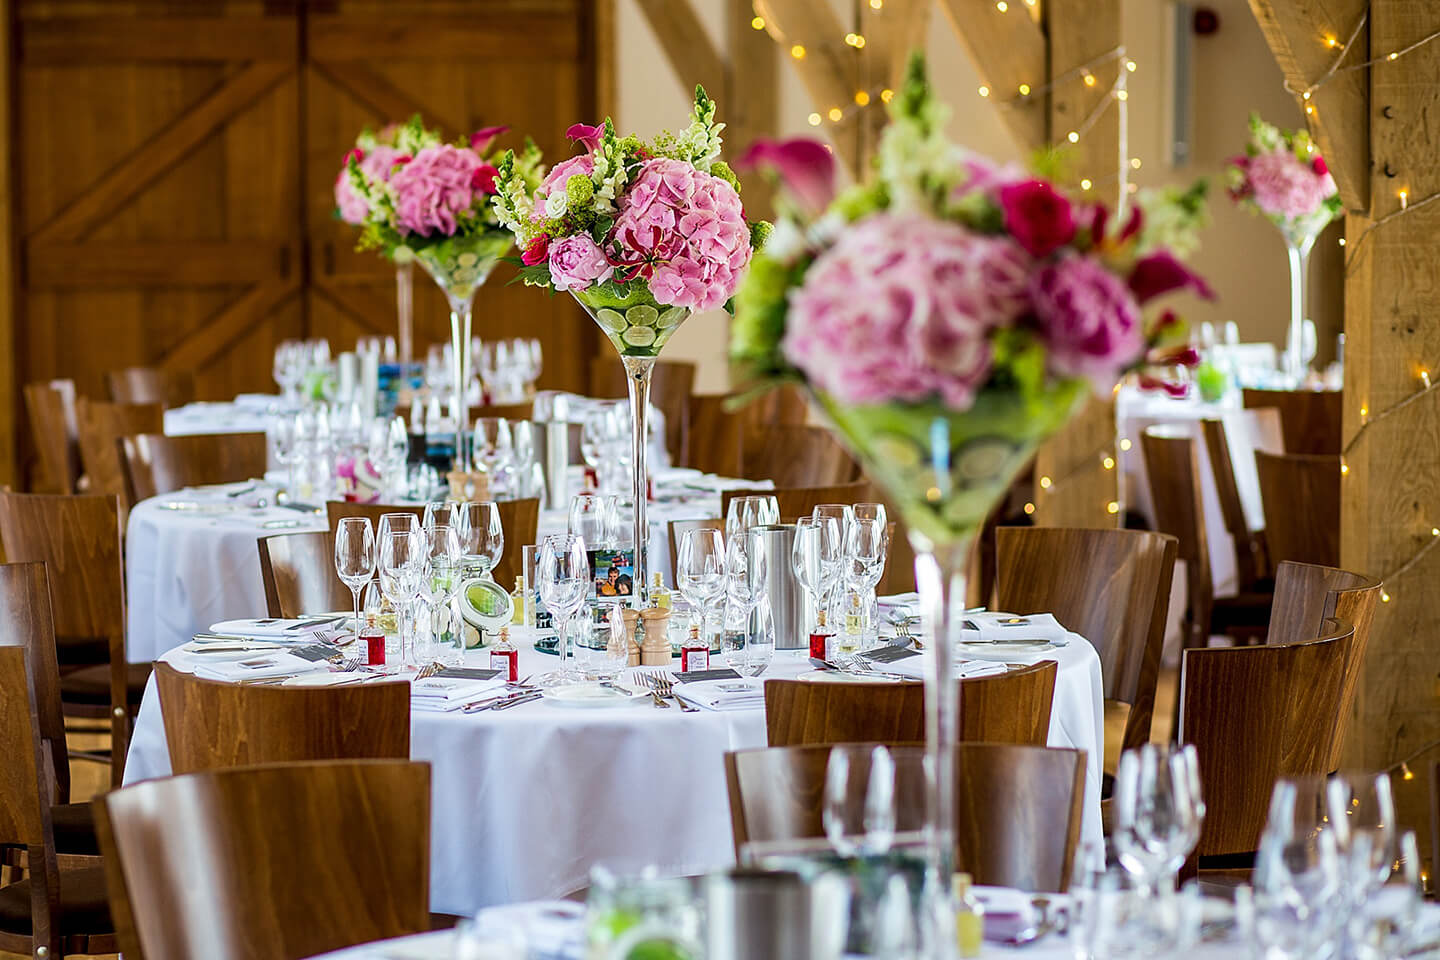 Tall vases filled with bright pink and green flowers make stunning wedding centrepieces